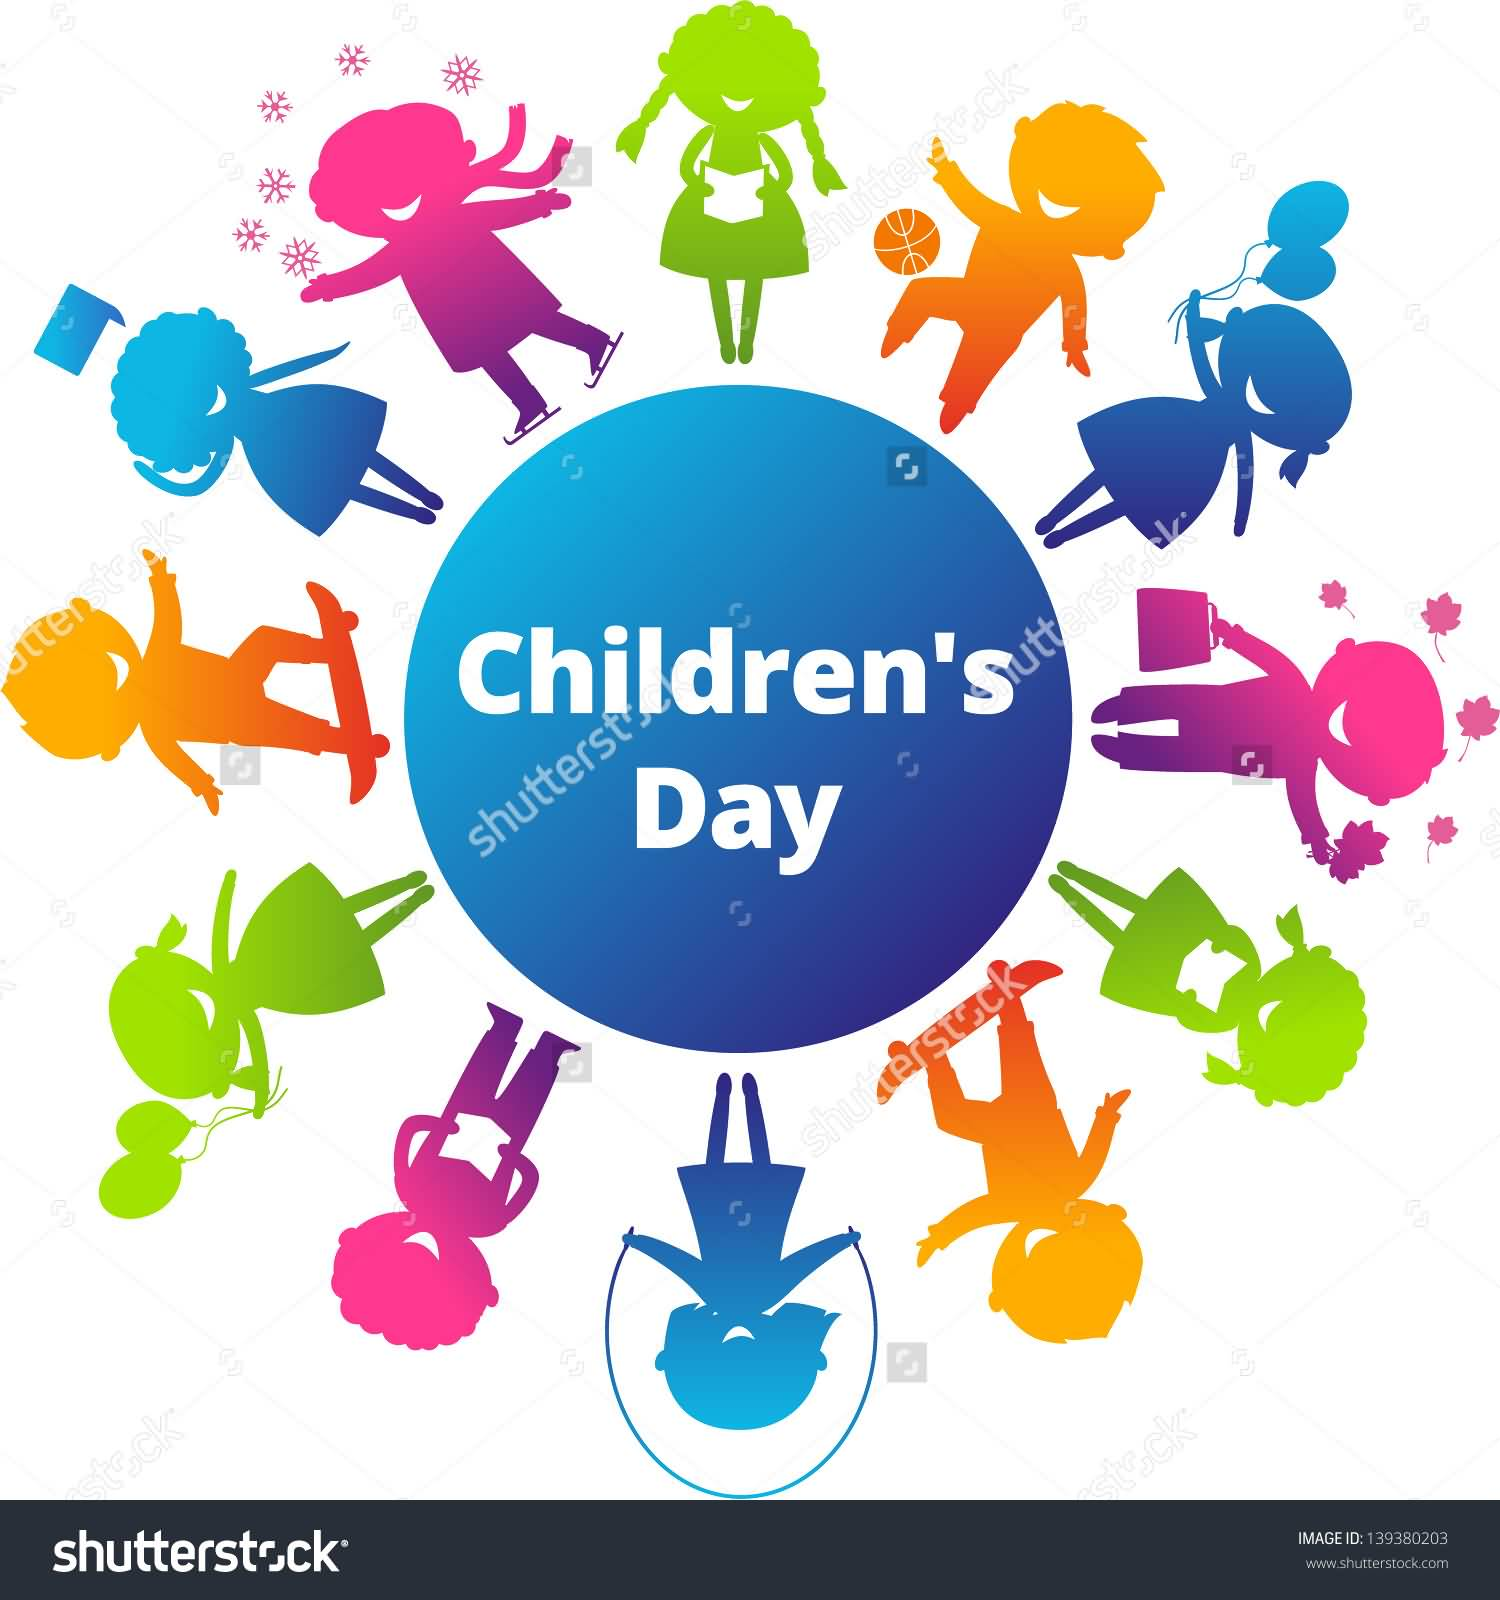 Children S: 55 Very Beautiful Children's Day Wish Images And Pictures